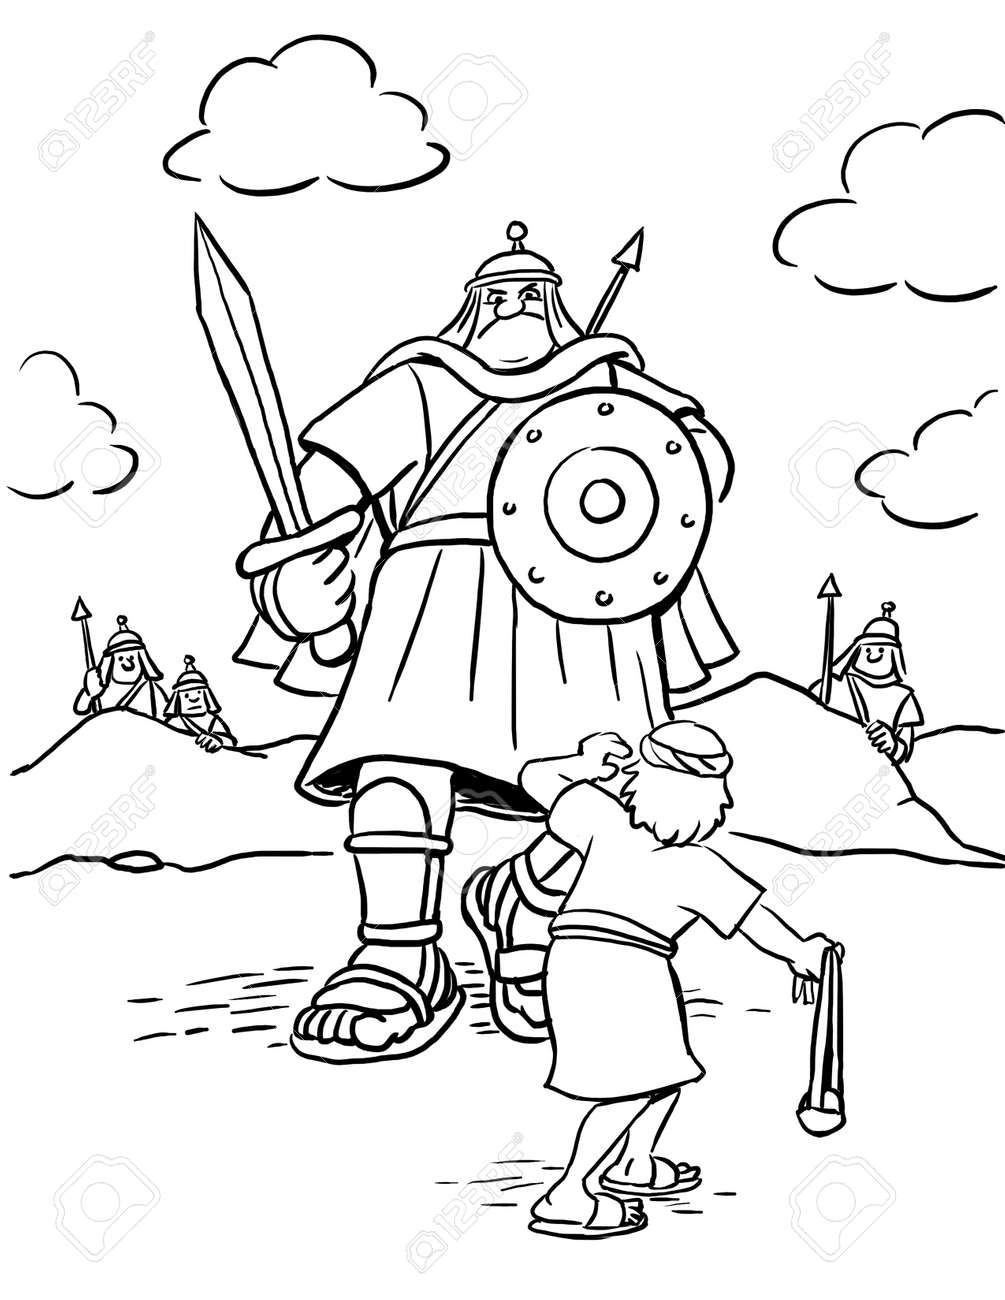 David and Goliath - Bible Coloring Pages | What's in the Bible? | 1300x1004